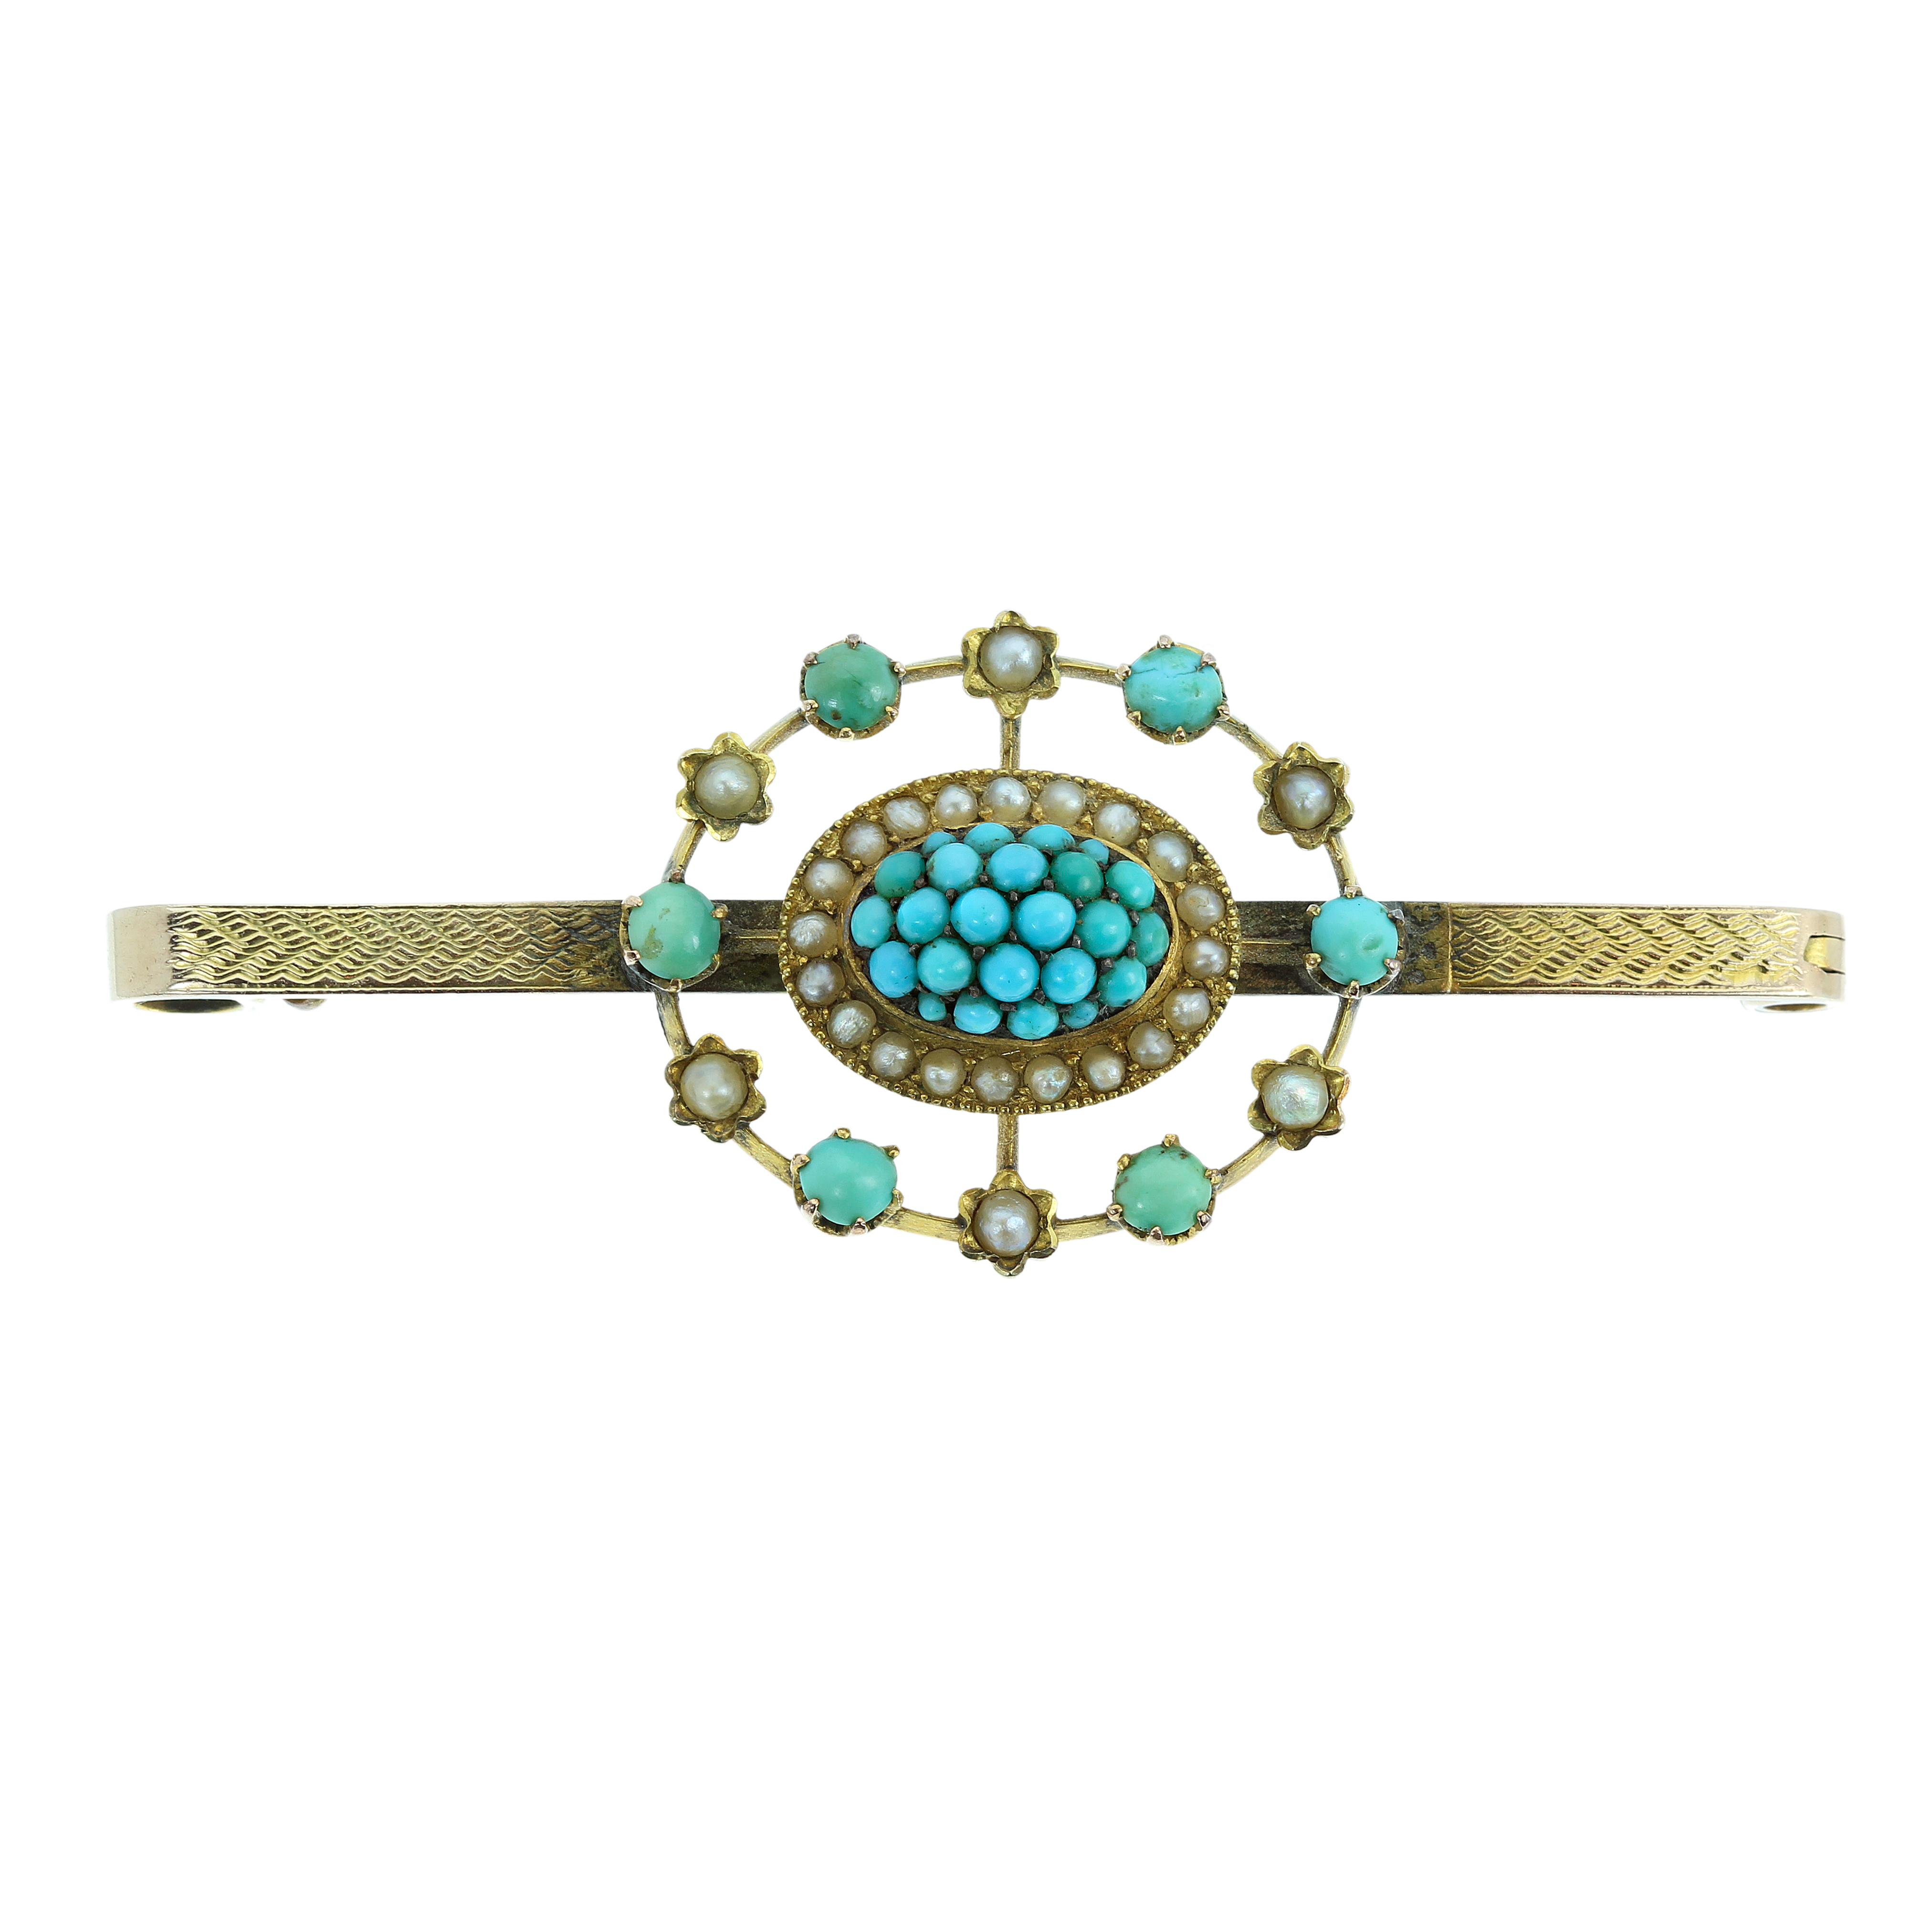 Los 6 - AN ANTIQUE TURQUOISE AND PEARL BEAD BROOCH in yellow gold, set with a central turquoise berry